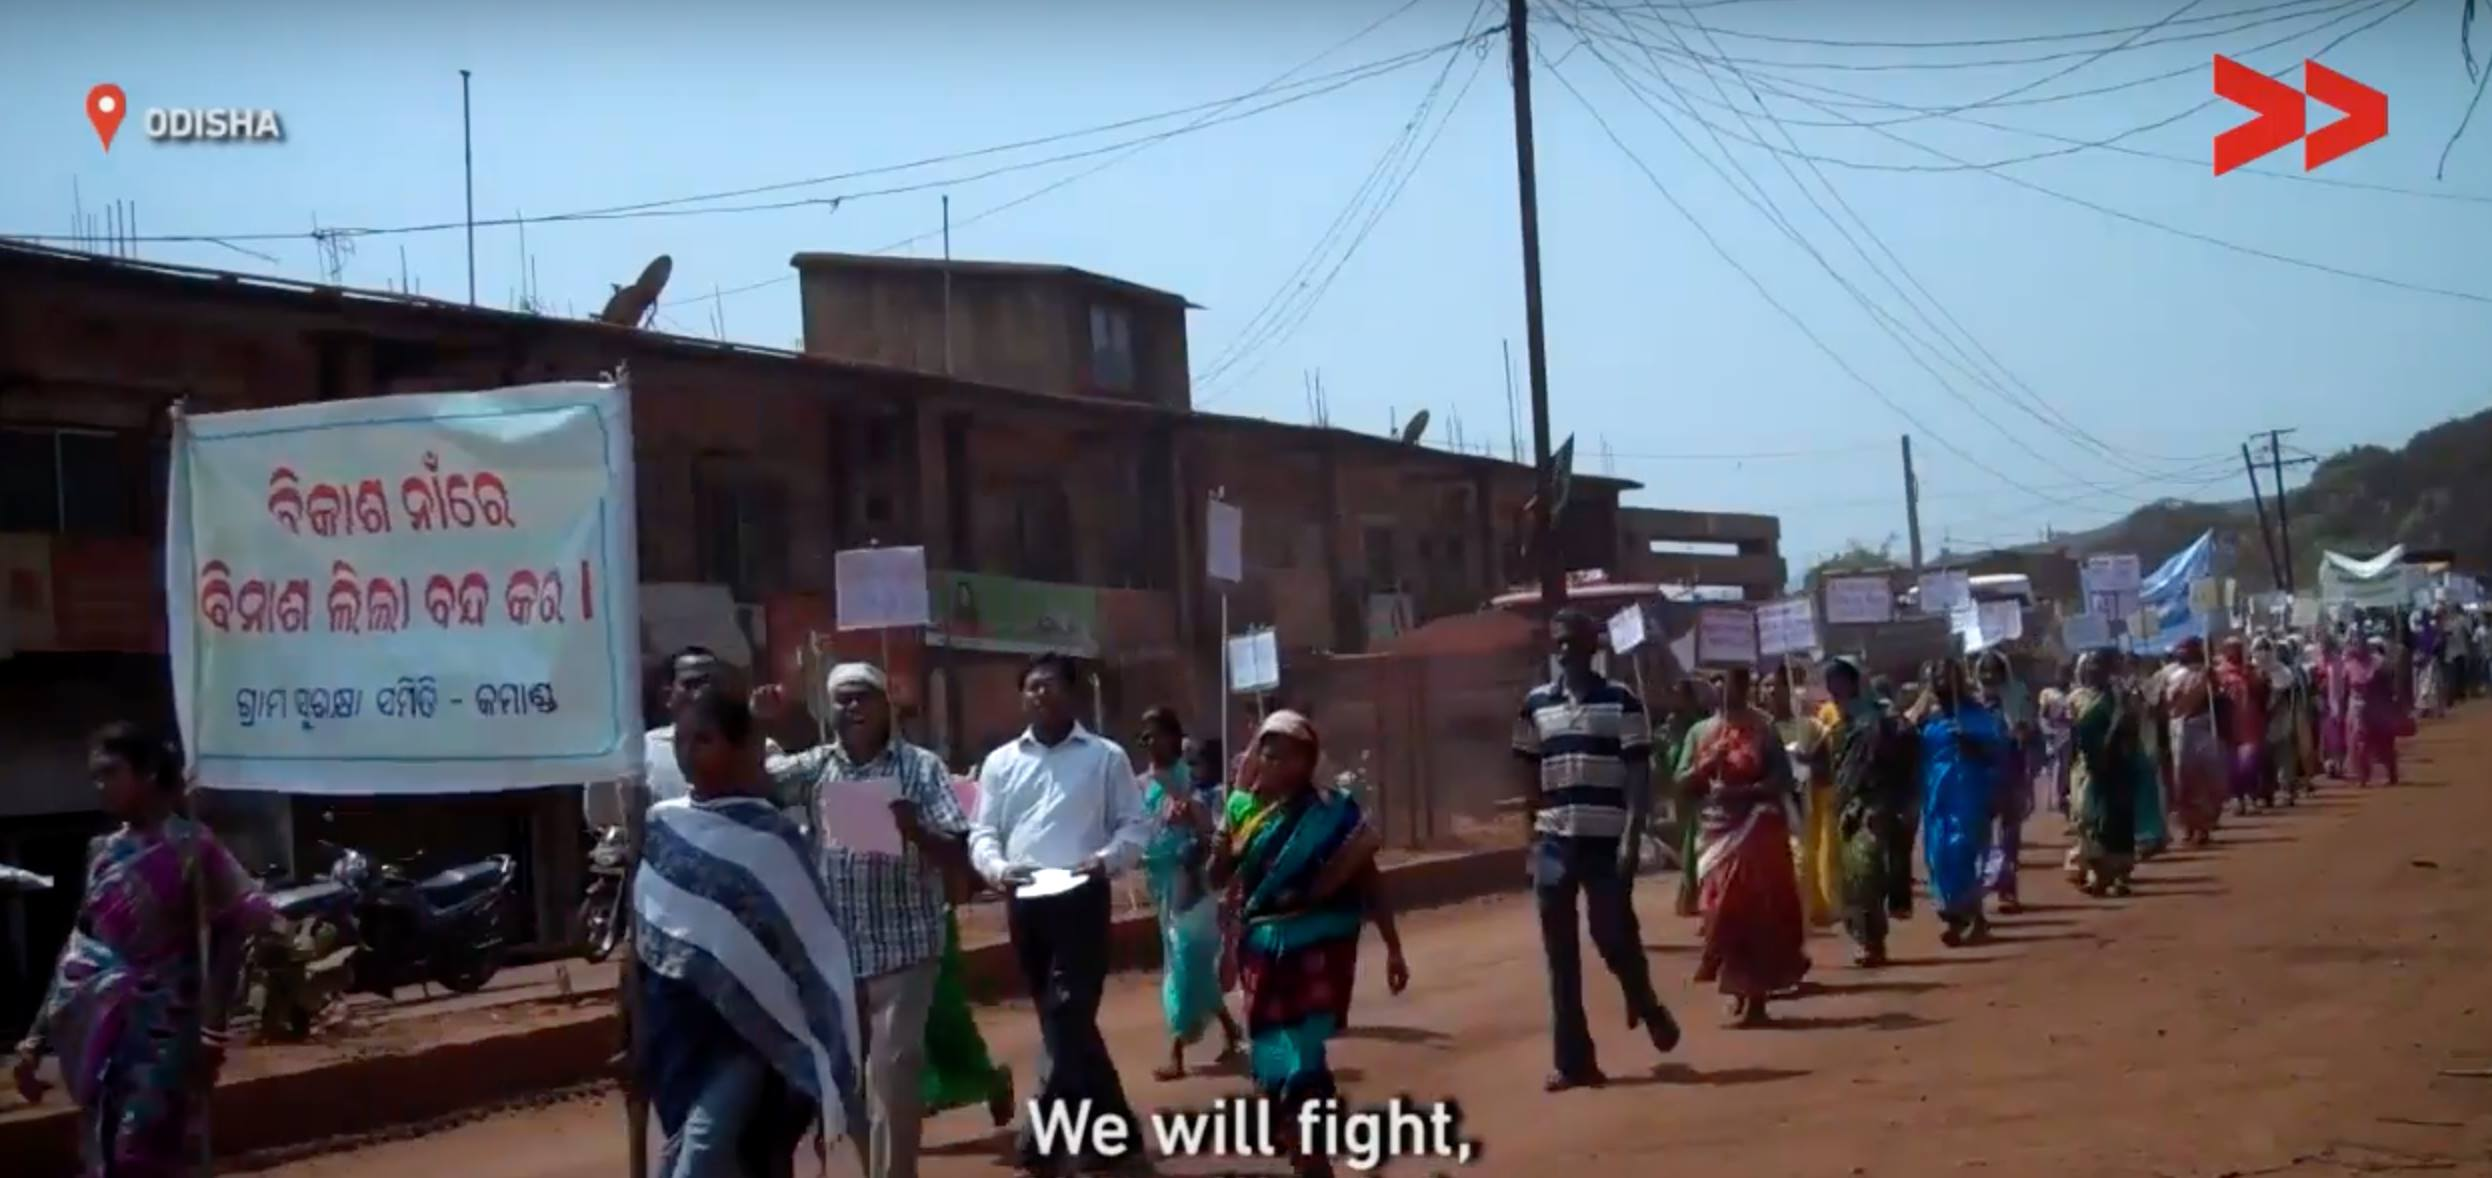 State Repression Forces Adivasis Out of Their Land in Odisha | Feminism In India